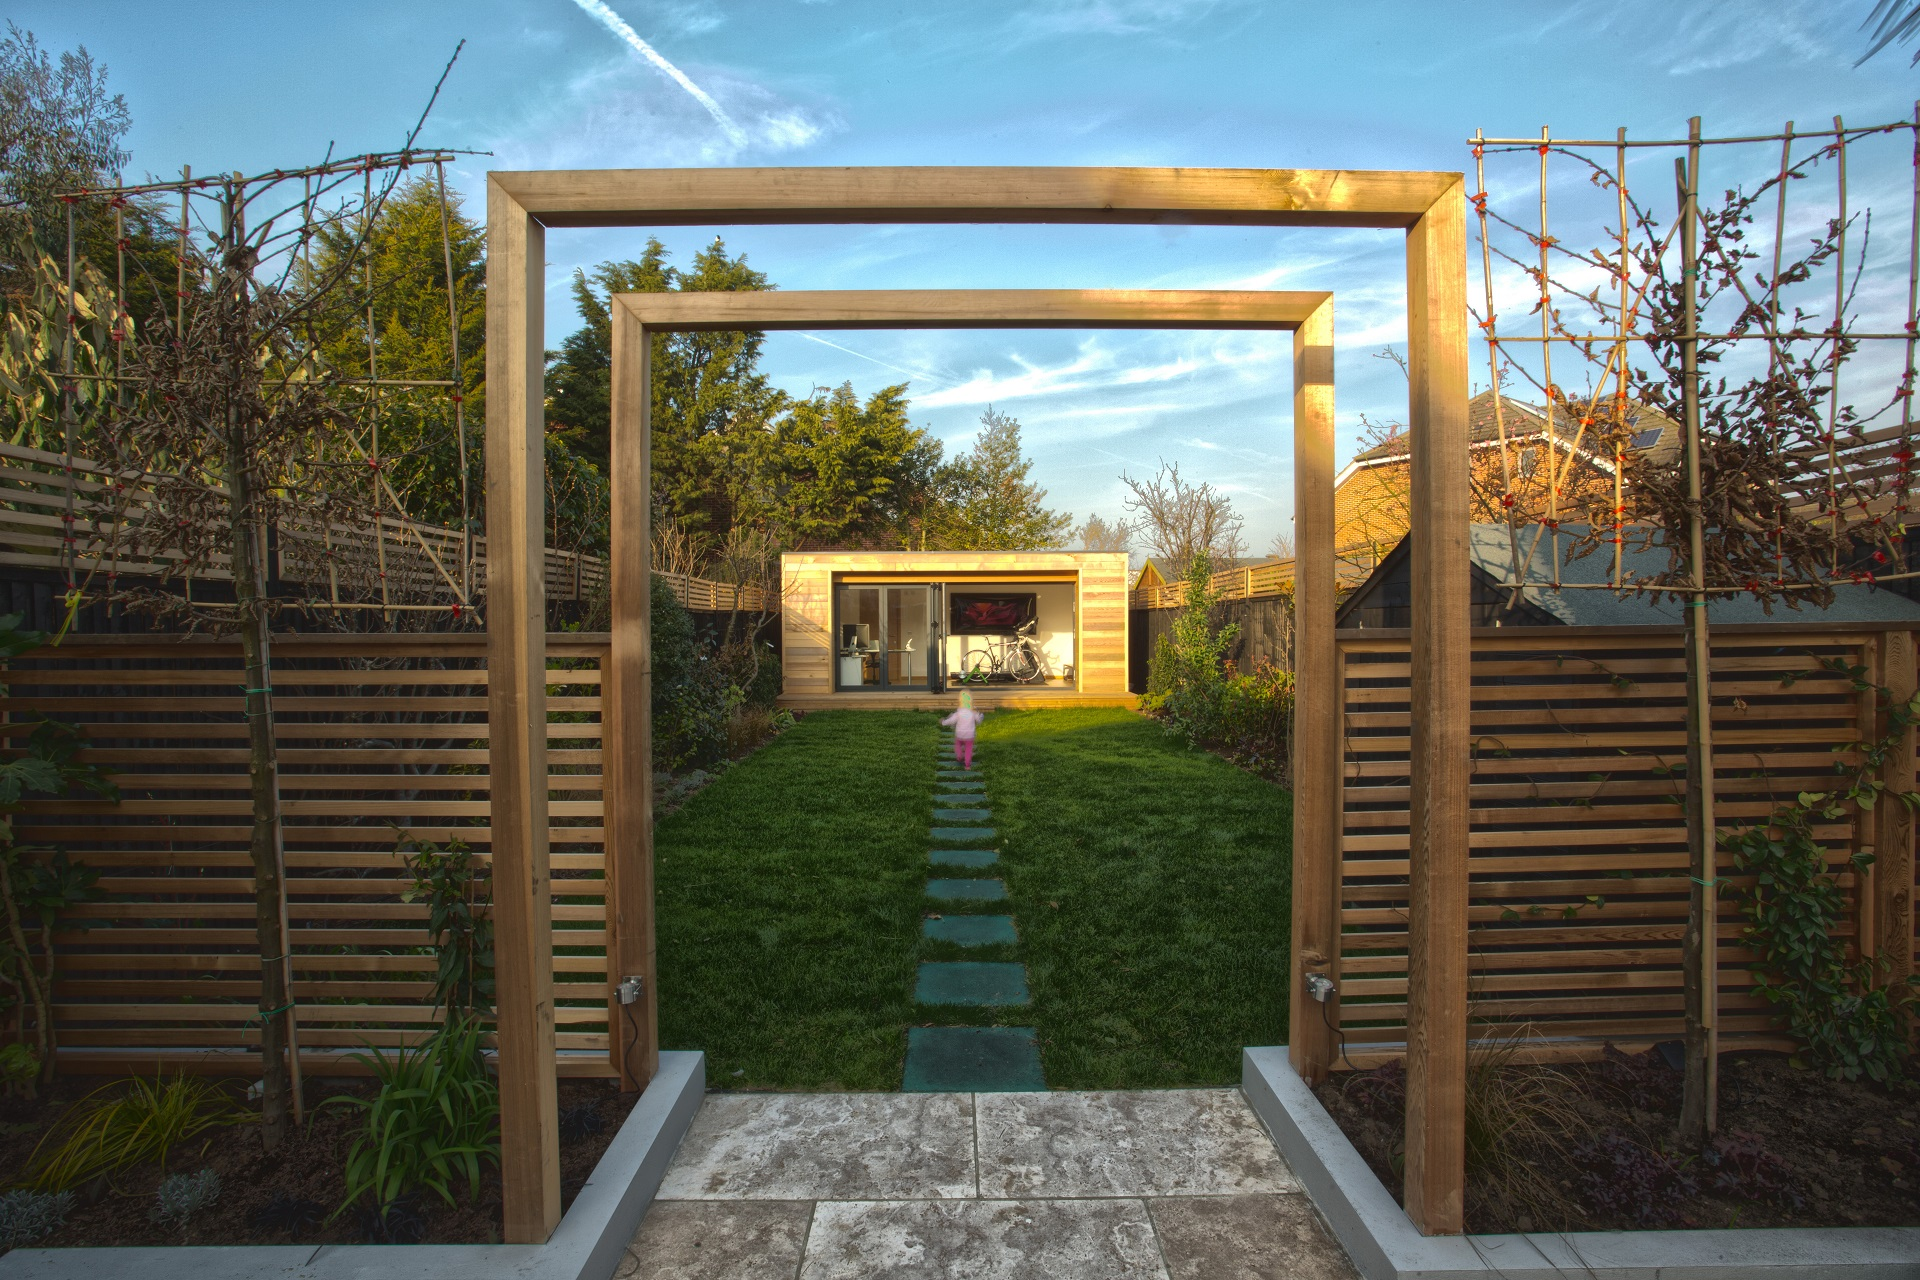 Two fence arches framing an eco garden office  building